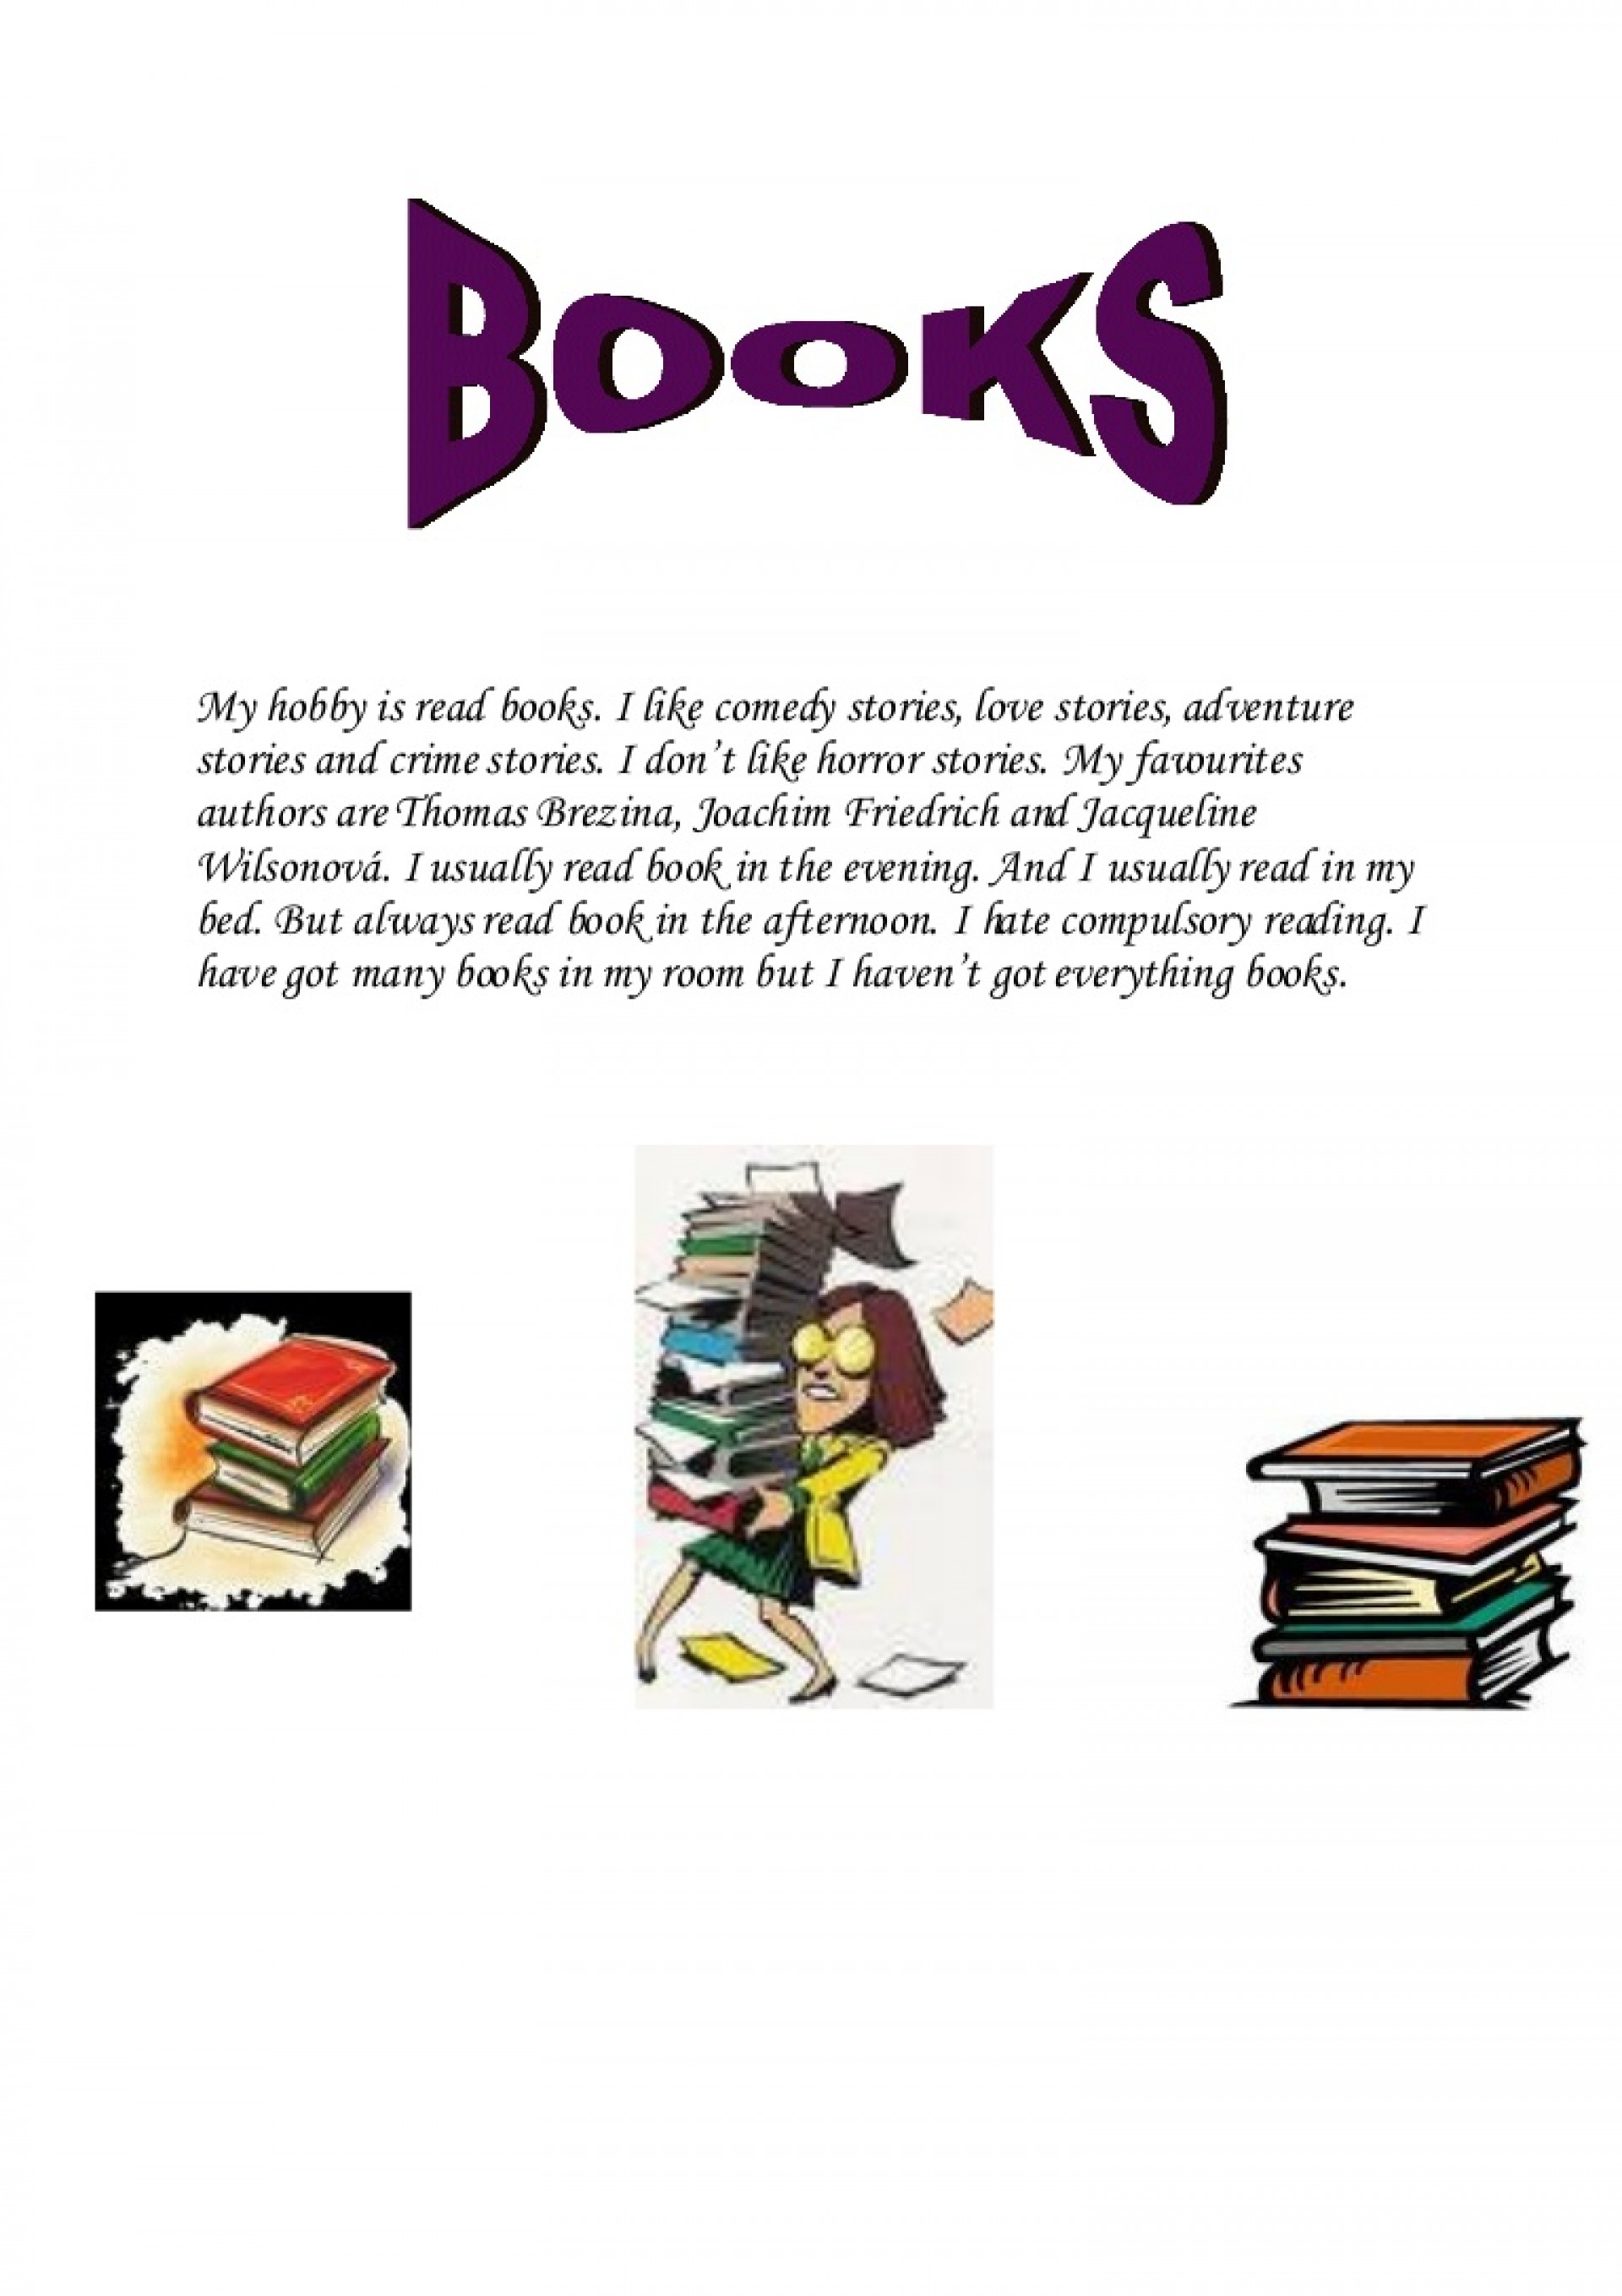 014 Essay Example Books And Reading My Hobby Is Read Booksverca Thumbnail Outstanding Benefits Of Book In English On For Class 6 1920